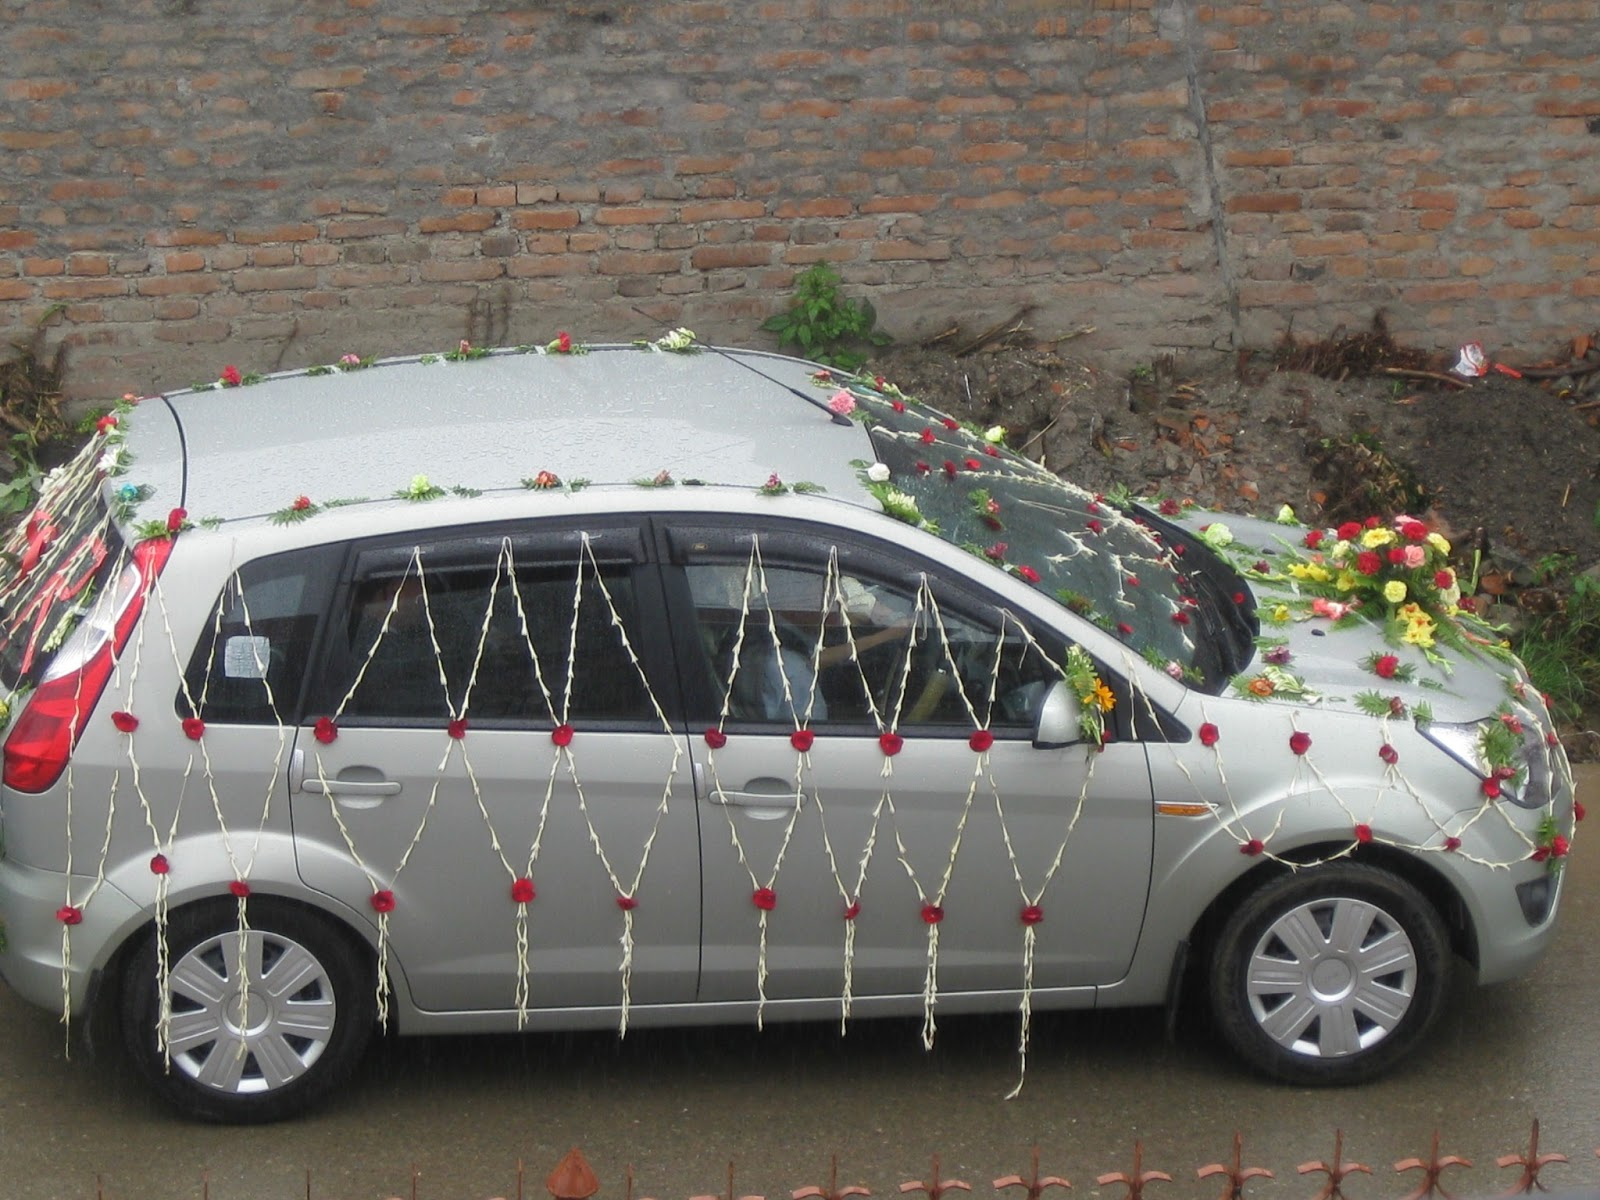 Ephesians 320 july 2013 it is wedding season here in nepal and same as in the us it is traditional for the wedding car to be decorated this particular wedding car was followed junglespirit Image collections